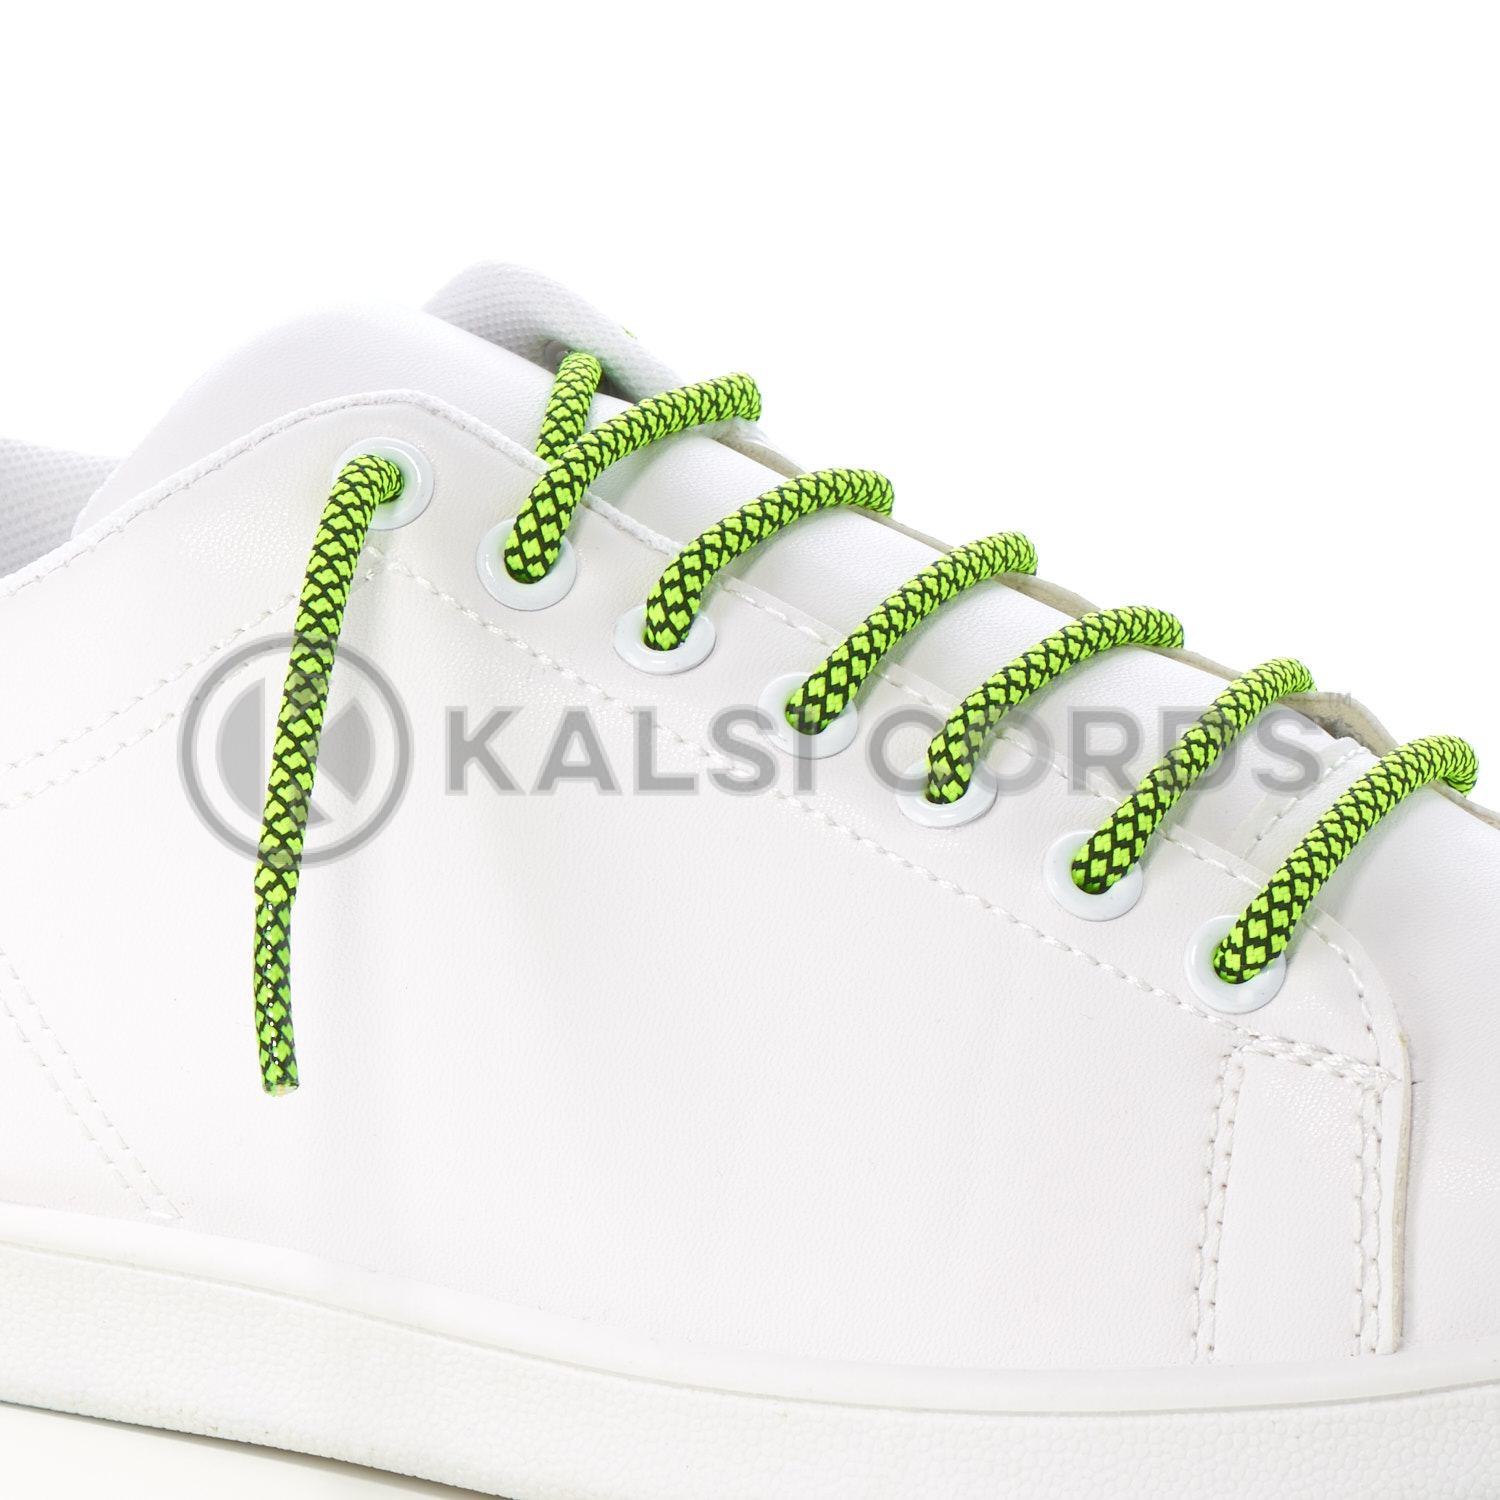 T655 5mm Round Cord Honeycomb Shoe Lace Fluorescent Yellow Black Kids Trainers Adults Adidas Yeezy Boost Hiking Walking Boots Kalsi Cords